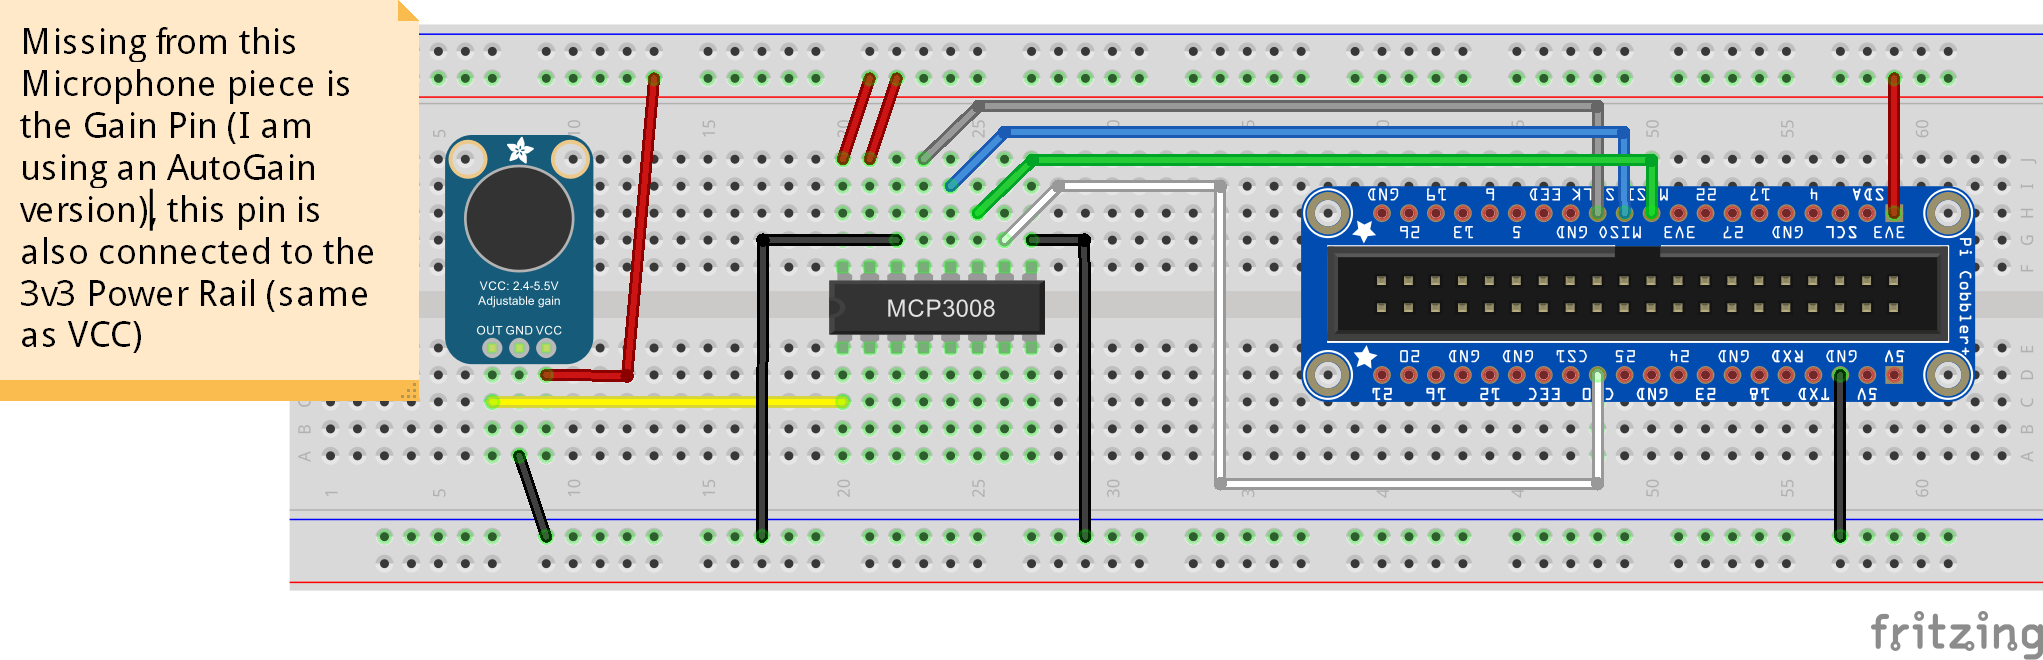 Electret Microphone Raspberry Pi Wiring Diagram For Professional Amplifier Max4466 With Adjustable Gain Arduino Windows Iot Core Sensing Sound Levels Hackster Io Rh Button Adafruit